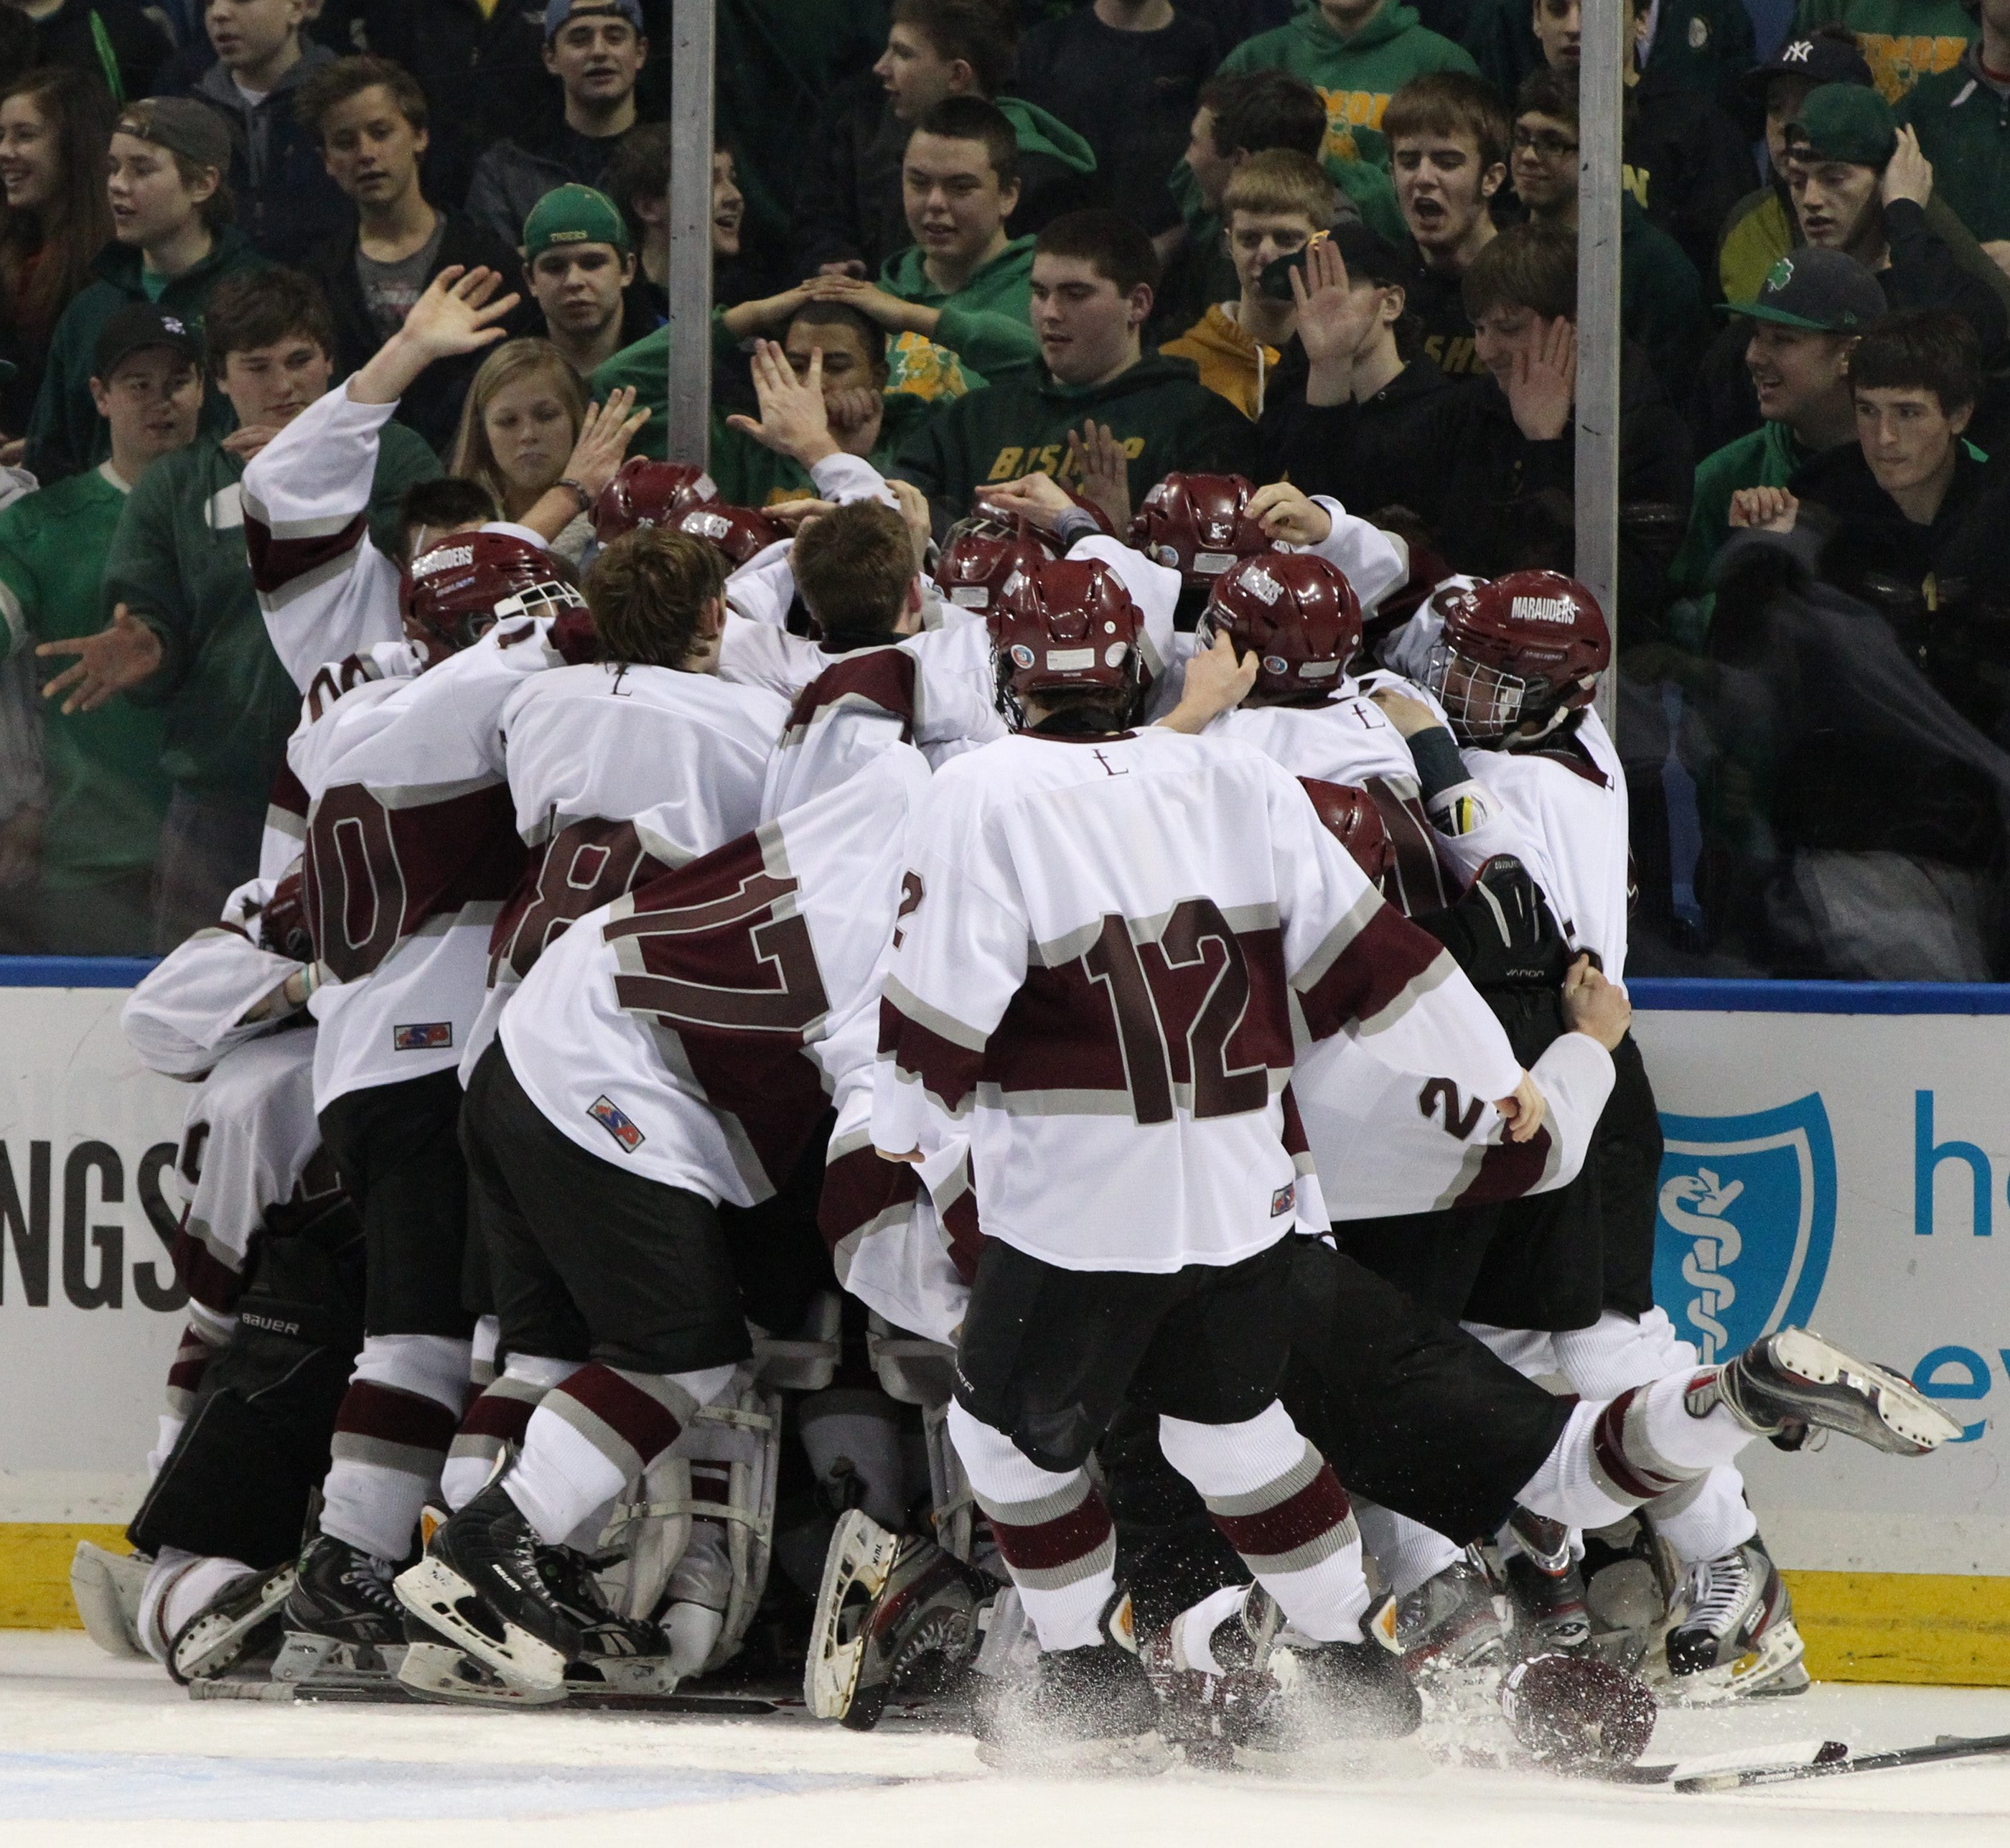 St. Joe's outstanding season included a championship win over Bishop Timon-St. Jude.